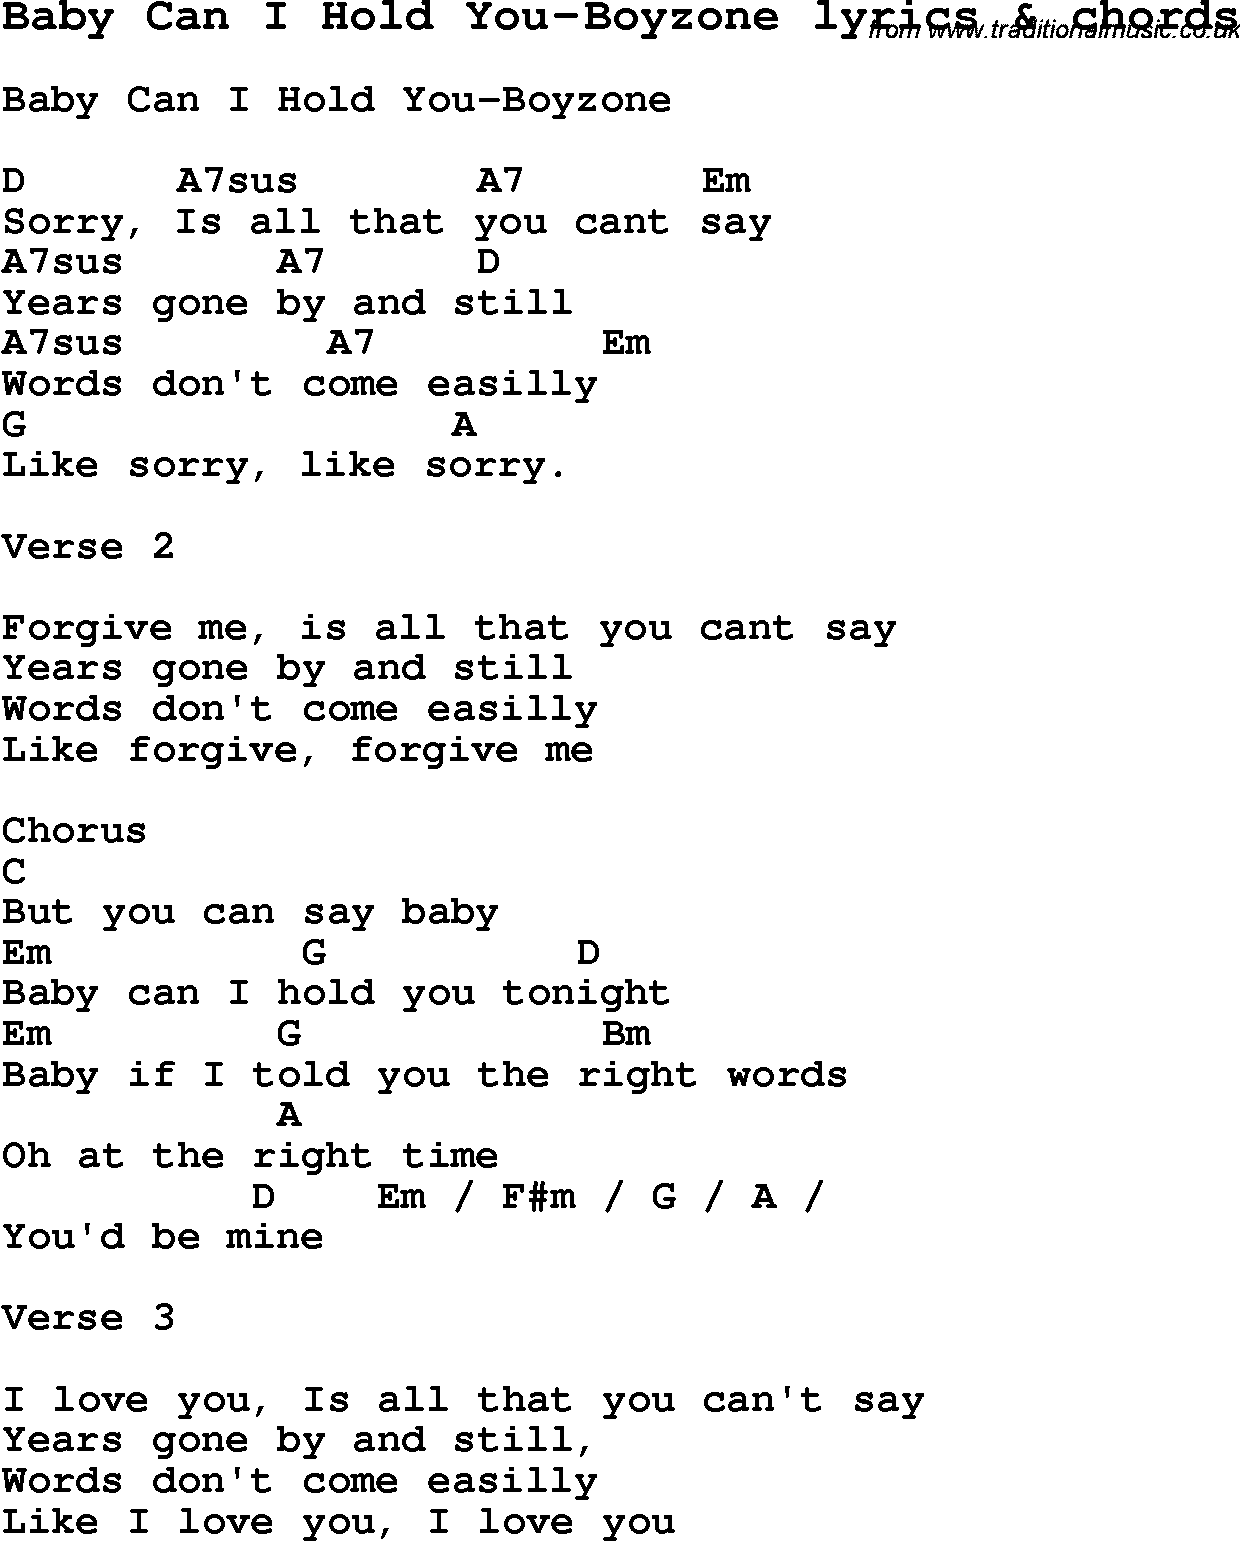 Sorry is all that you can say lyrics